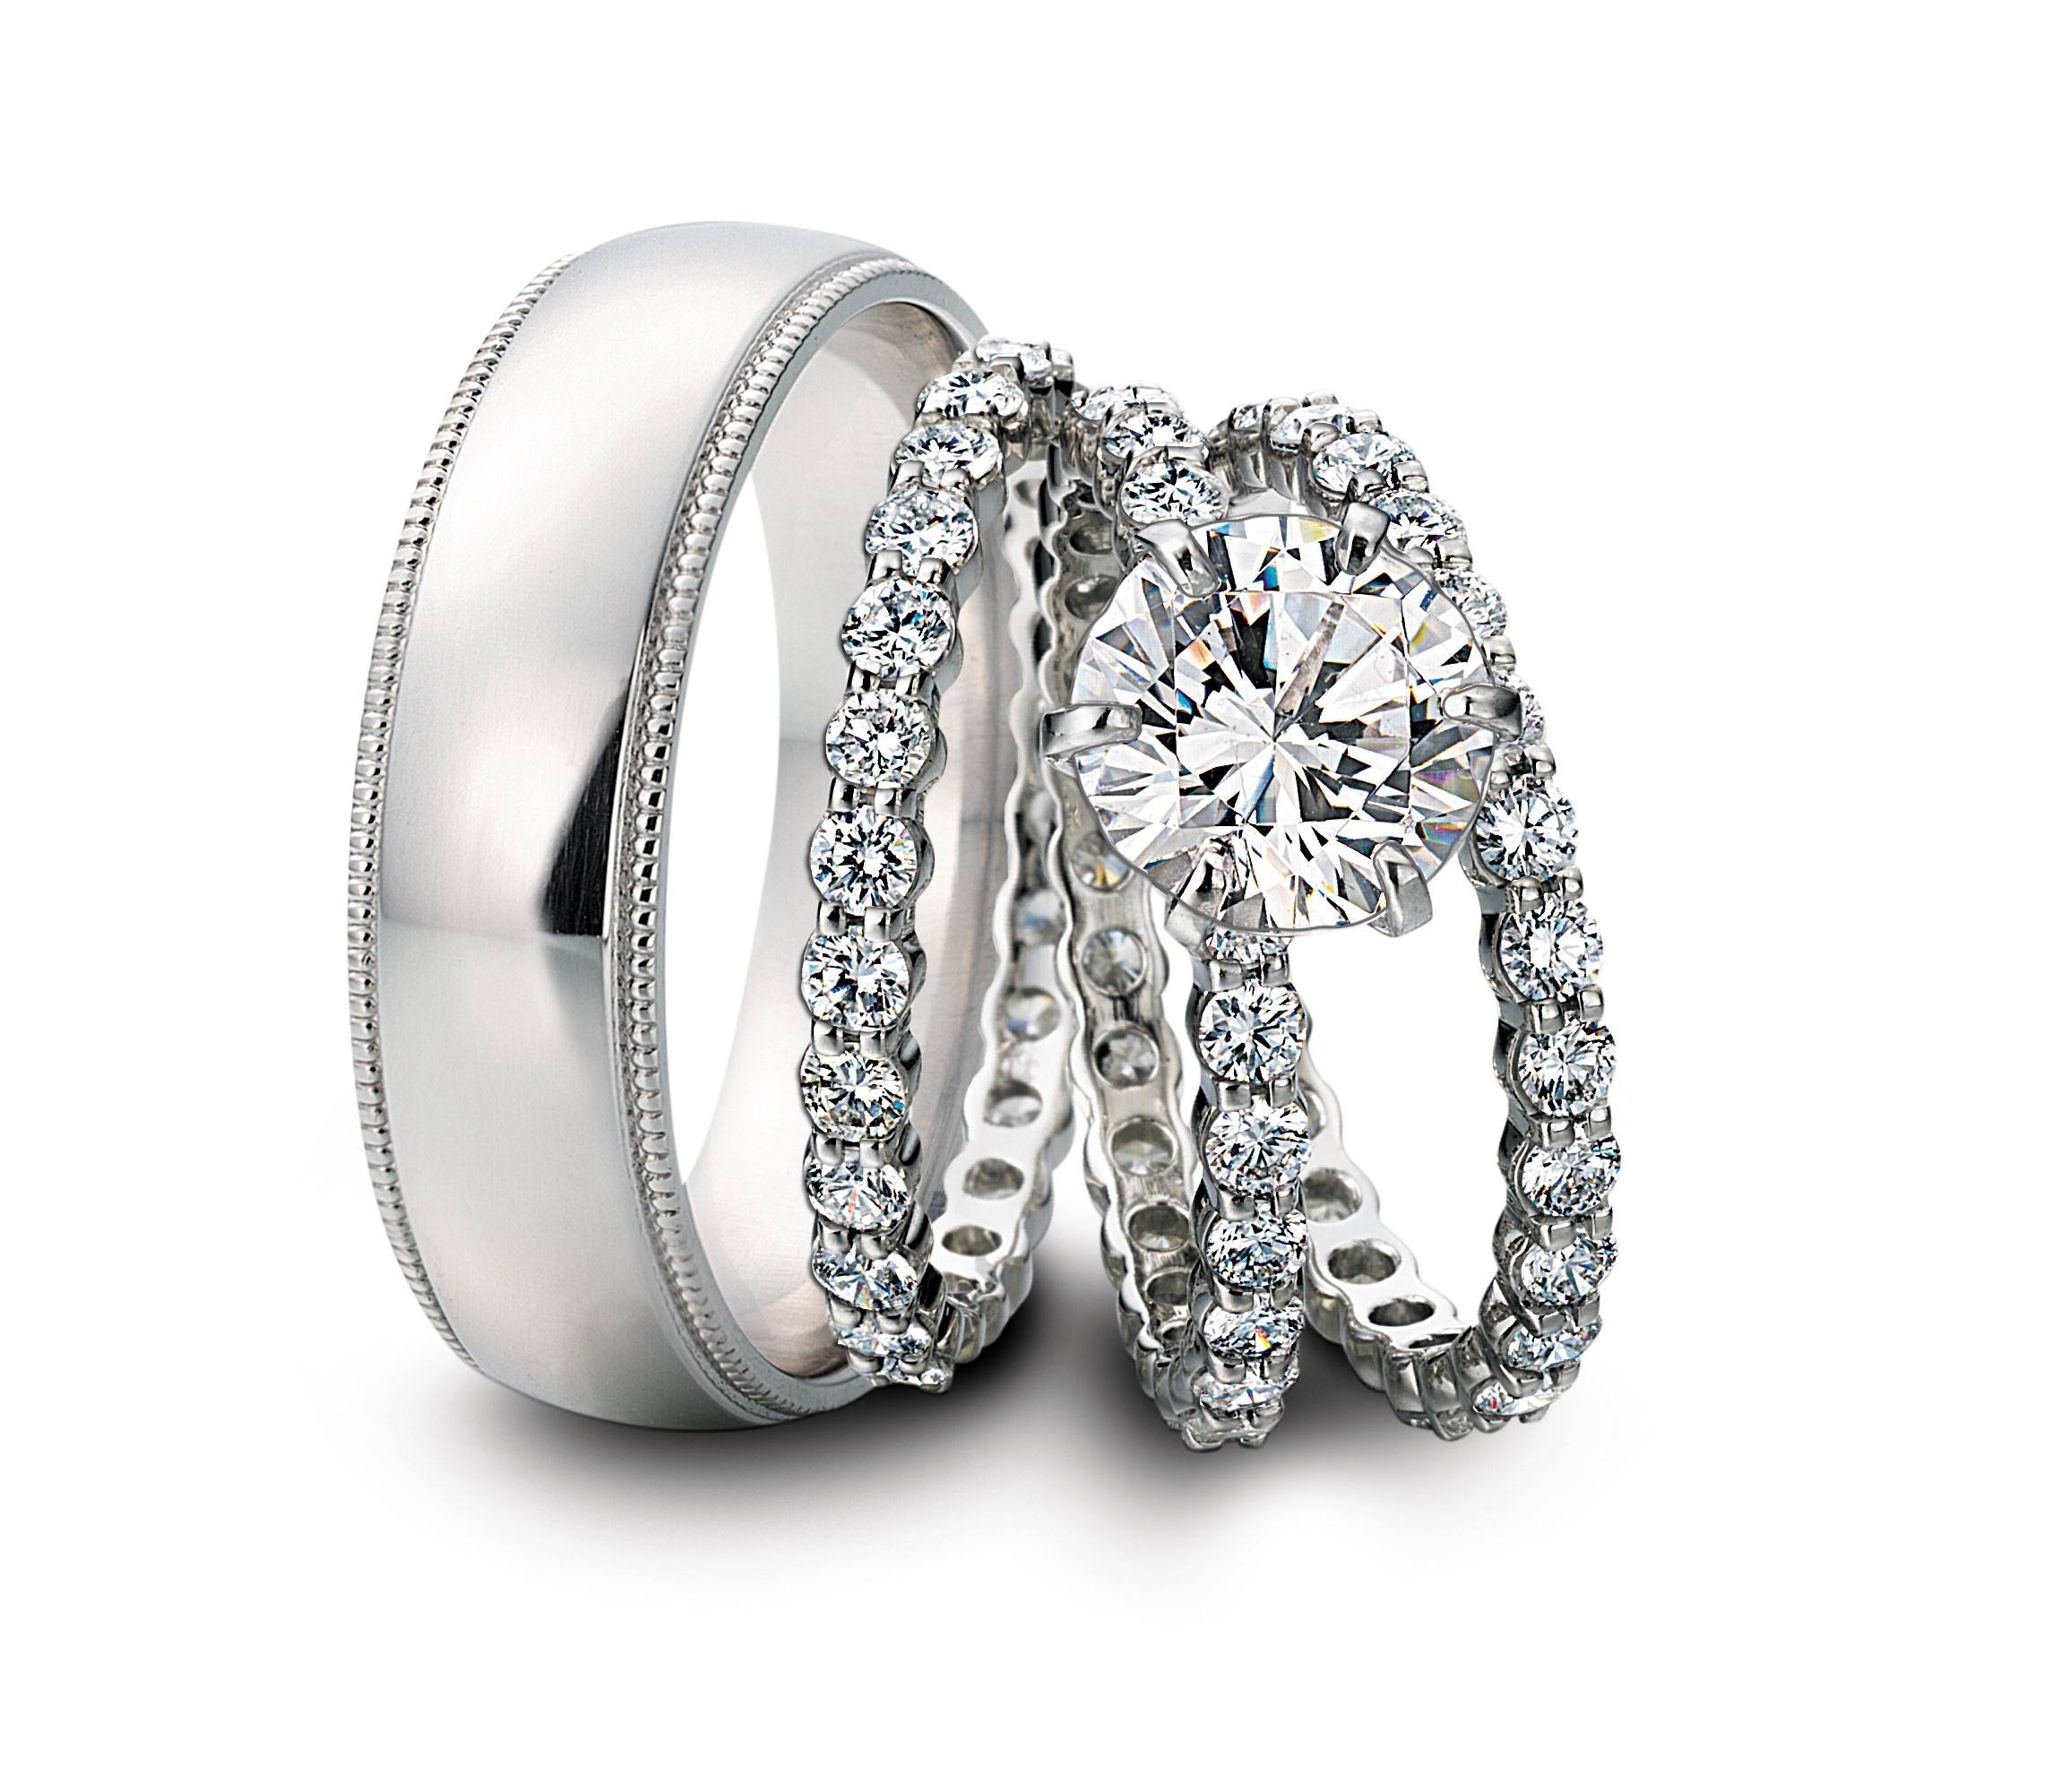 50 Wedding Band Sets For Her, Gold His And Her Wedding Band Ring With Regard To Tungsten Wedding Bands For Her (View 1 of 15)